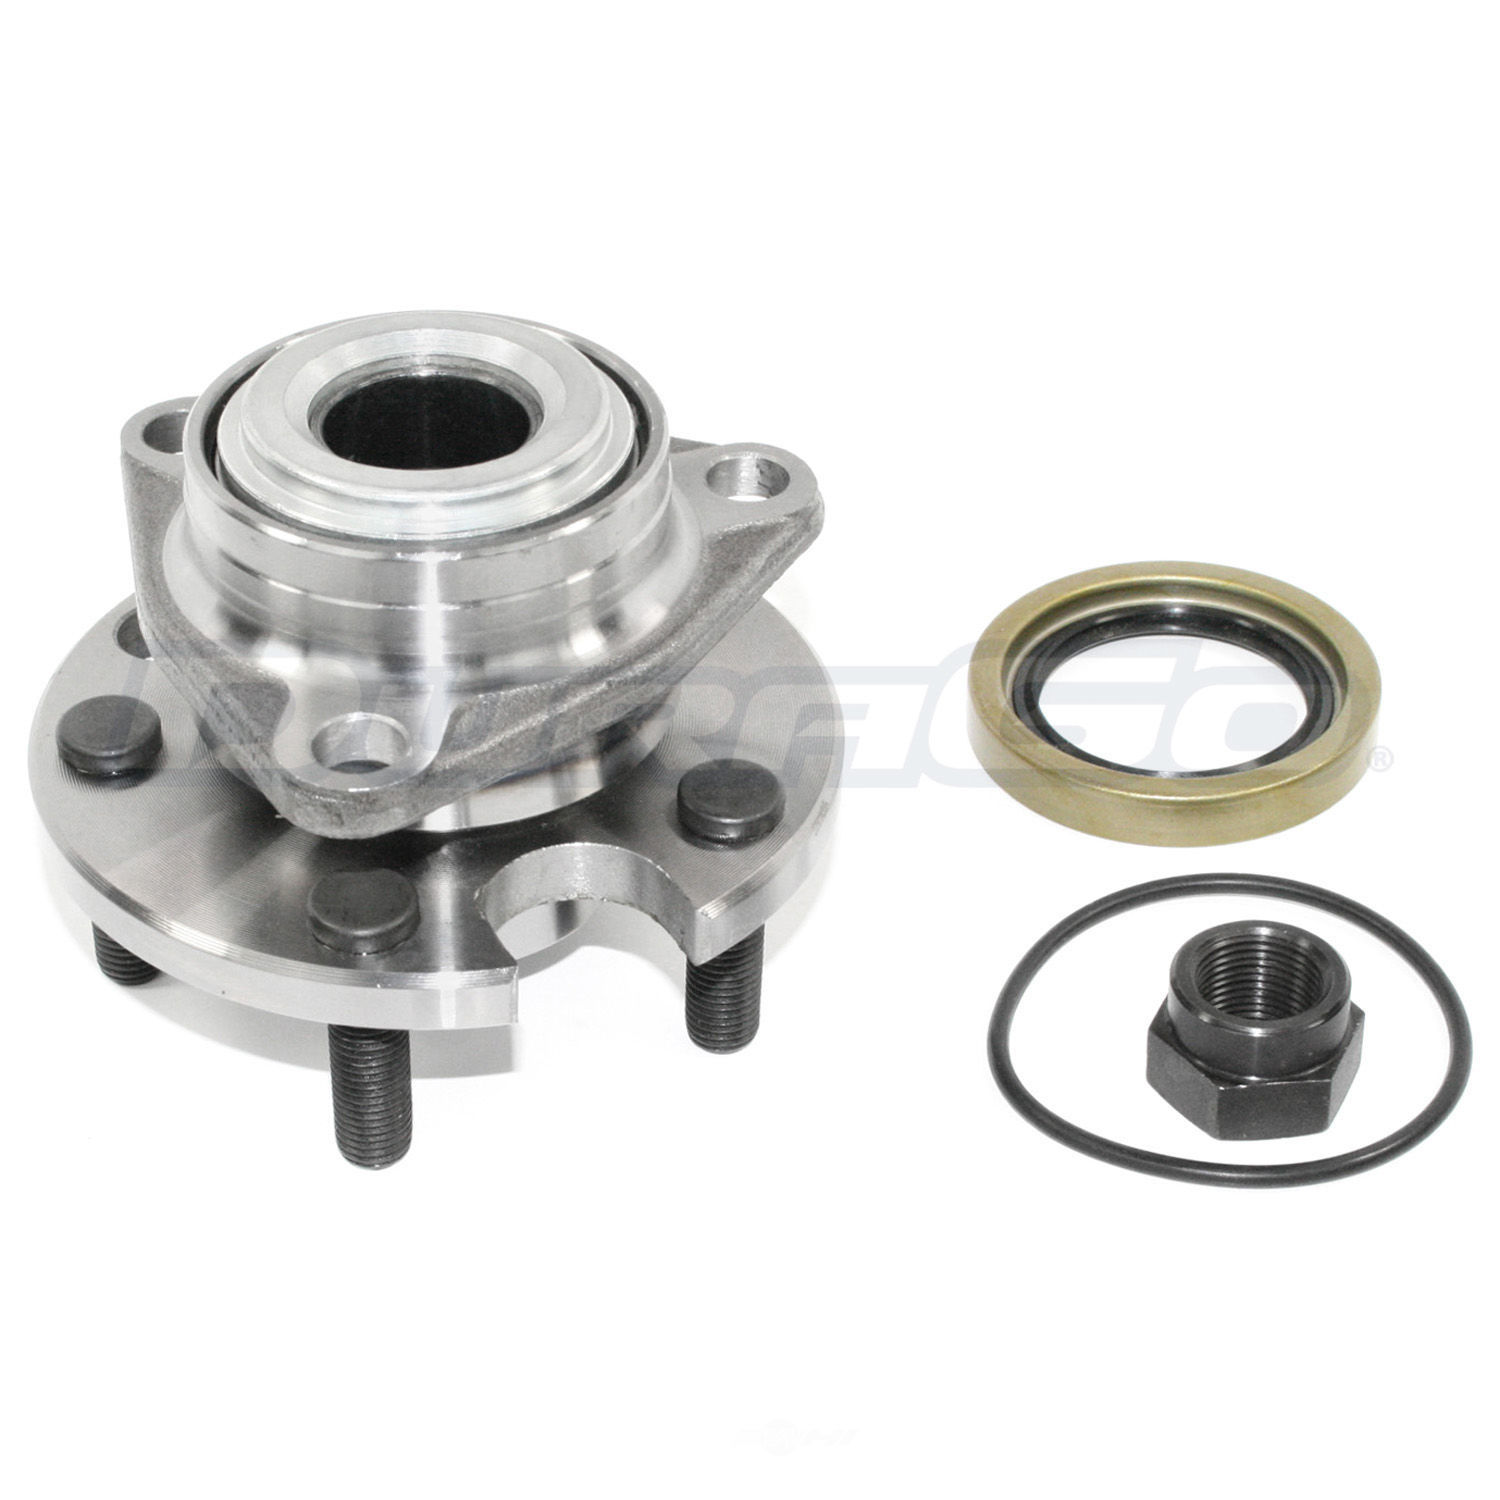 DURAGO - Axle Bearing and Hub Assembly - D48 295-13011